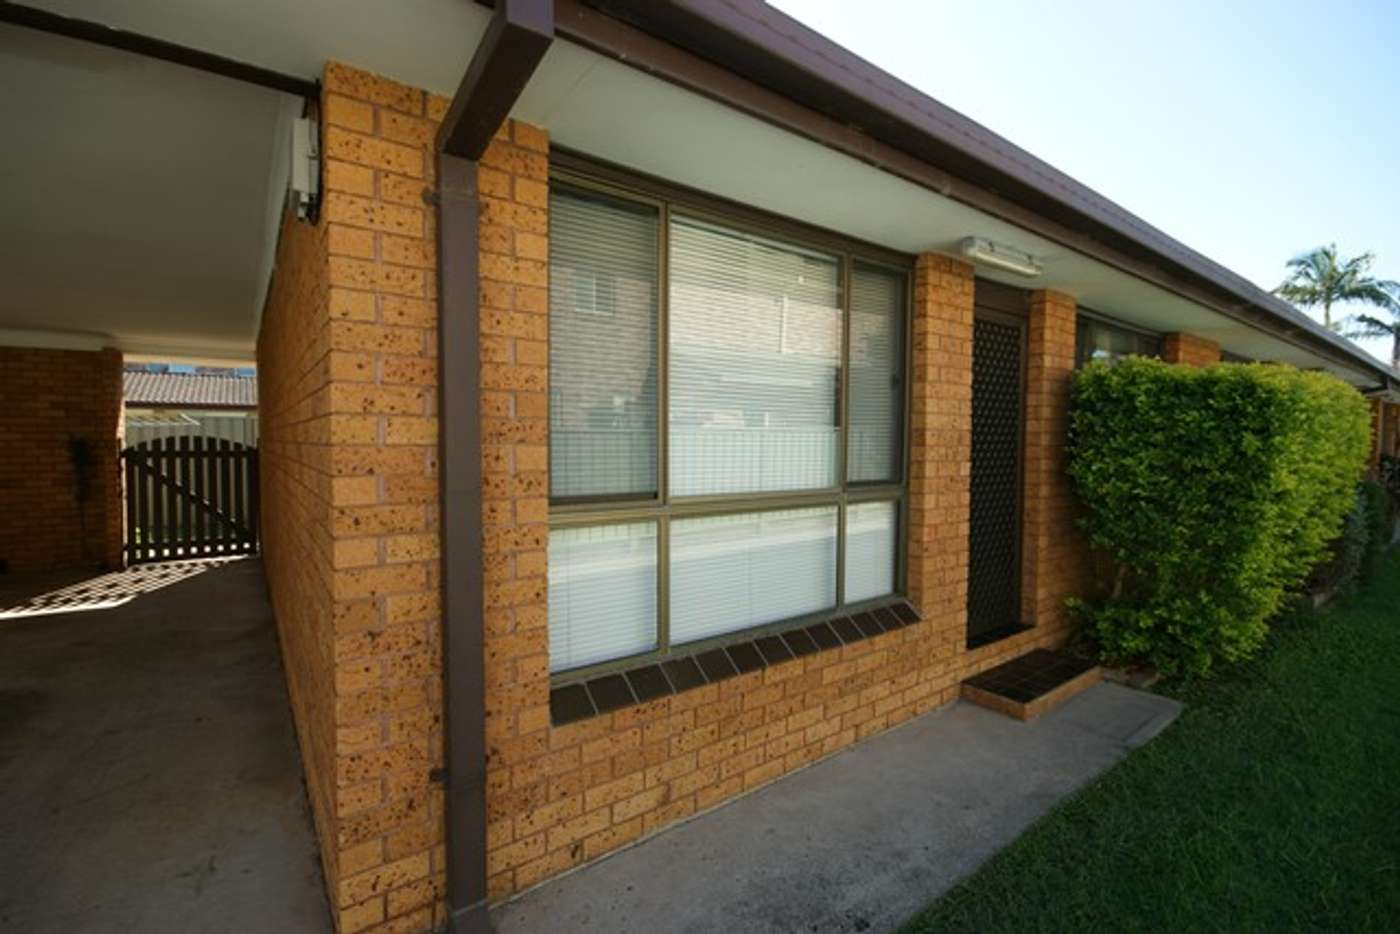 Main view of Homely unit listing, 2/26 Boultwood Street, Coffs Harbour NSW 2450